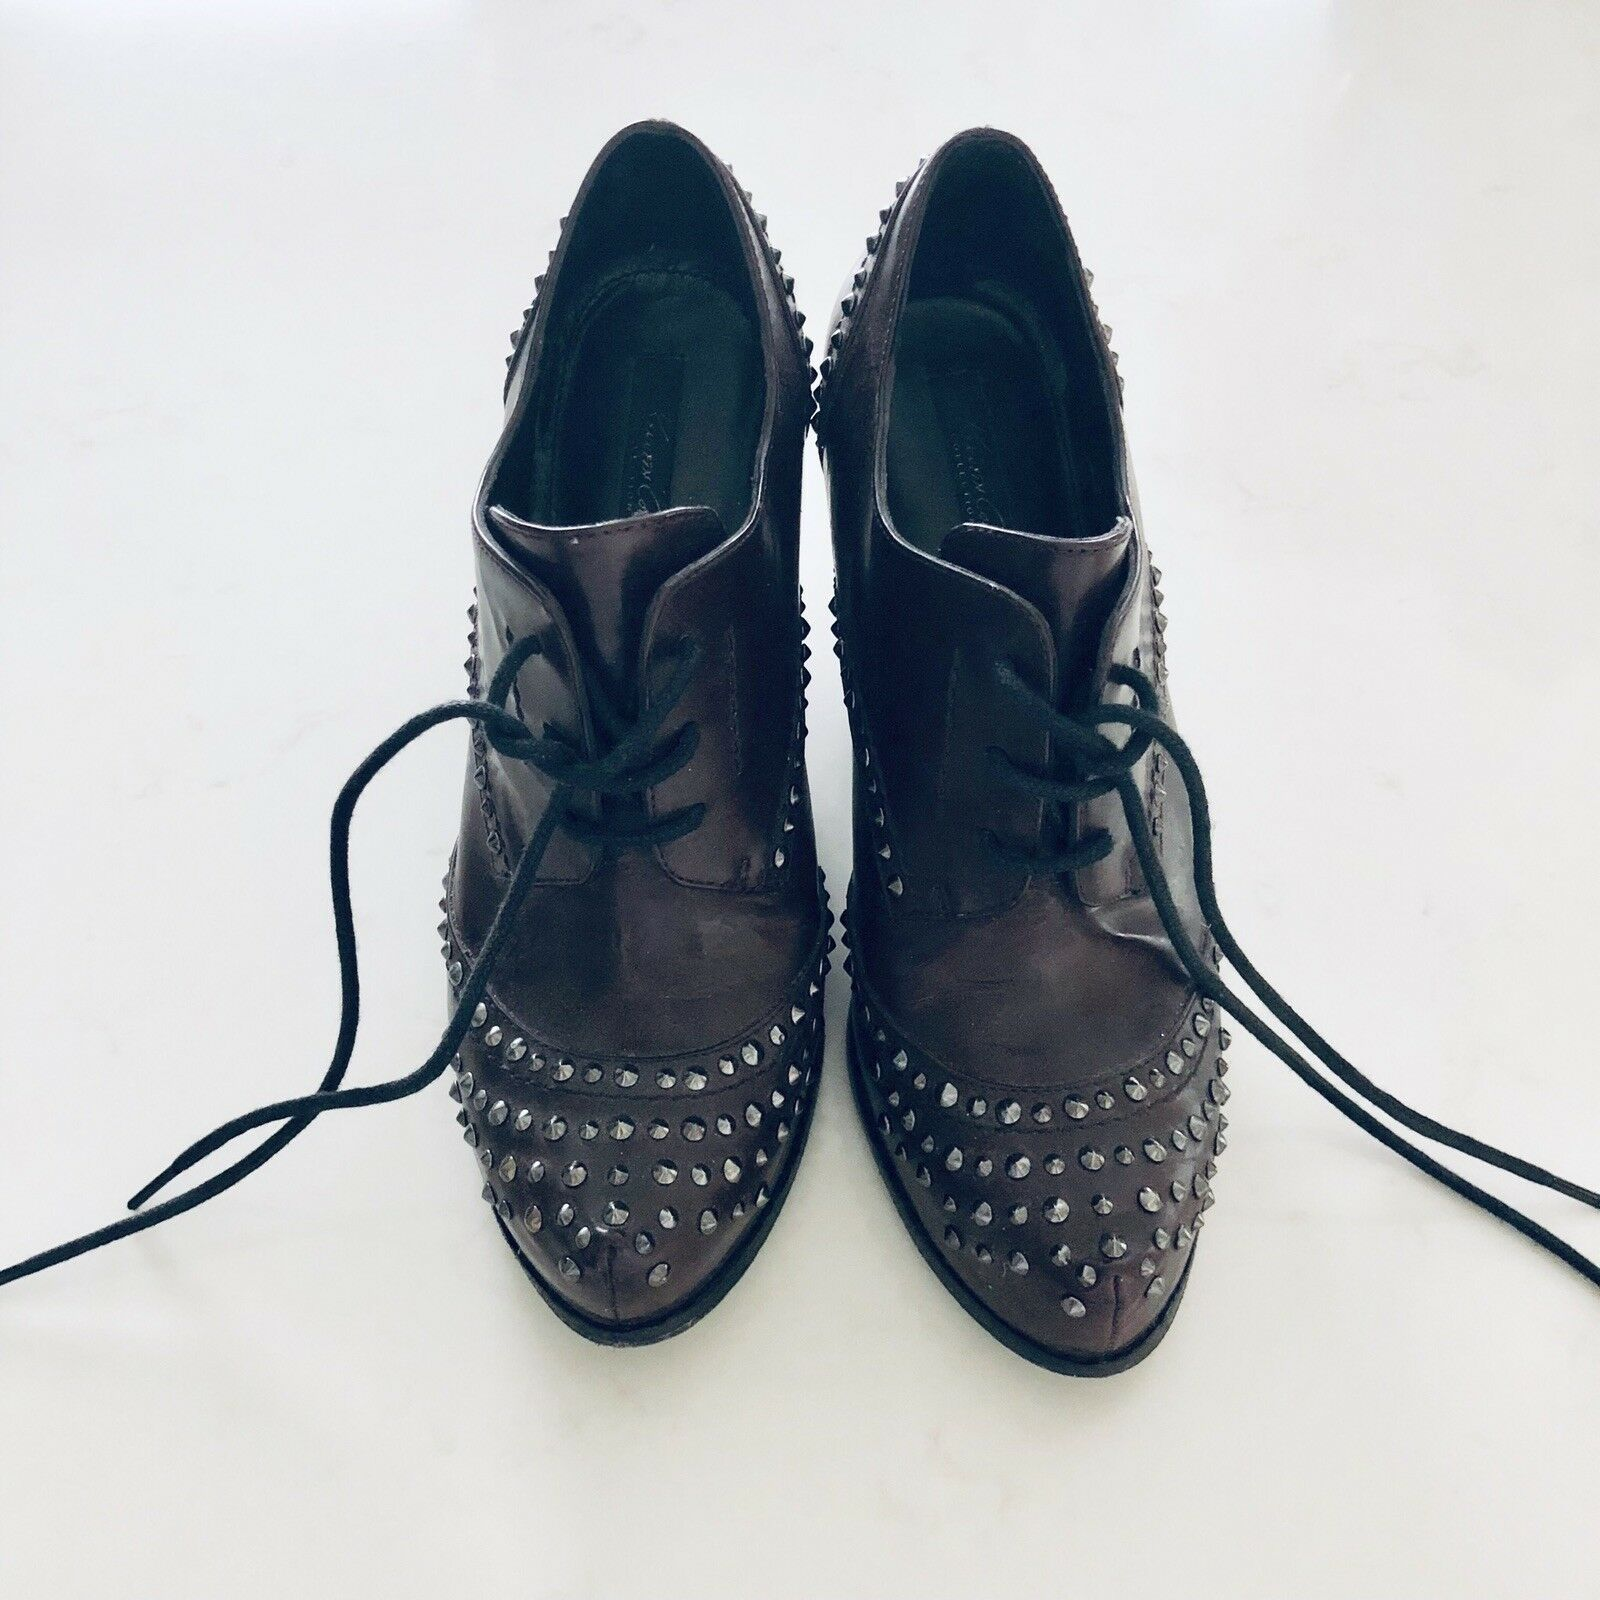 Kenneth Cole studs close toe booties 6